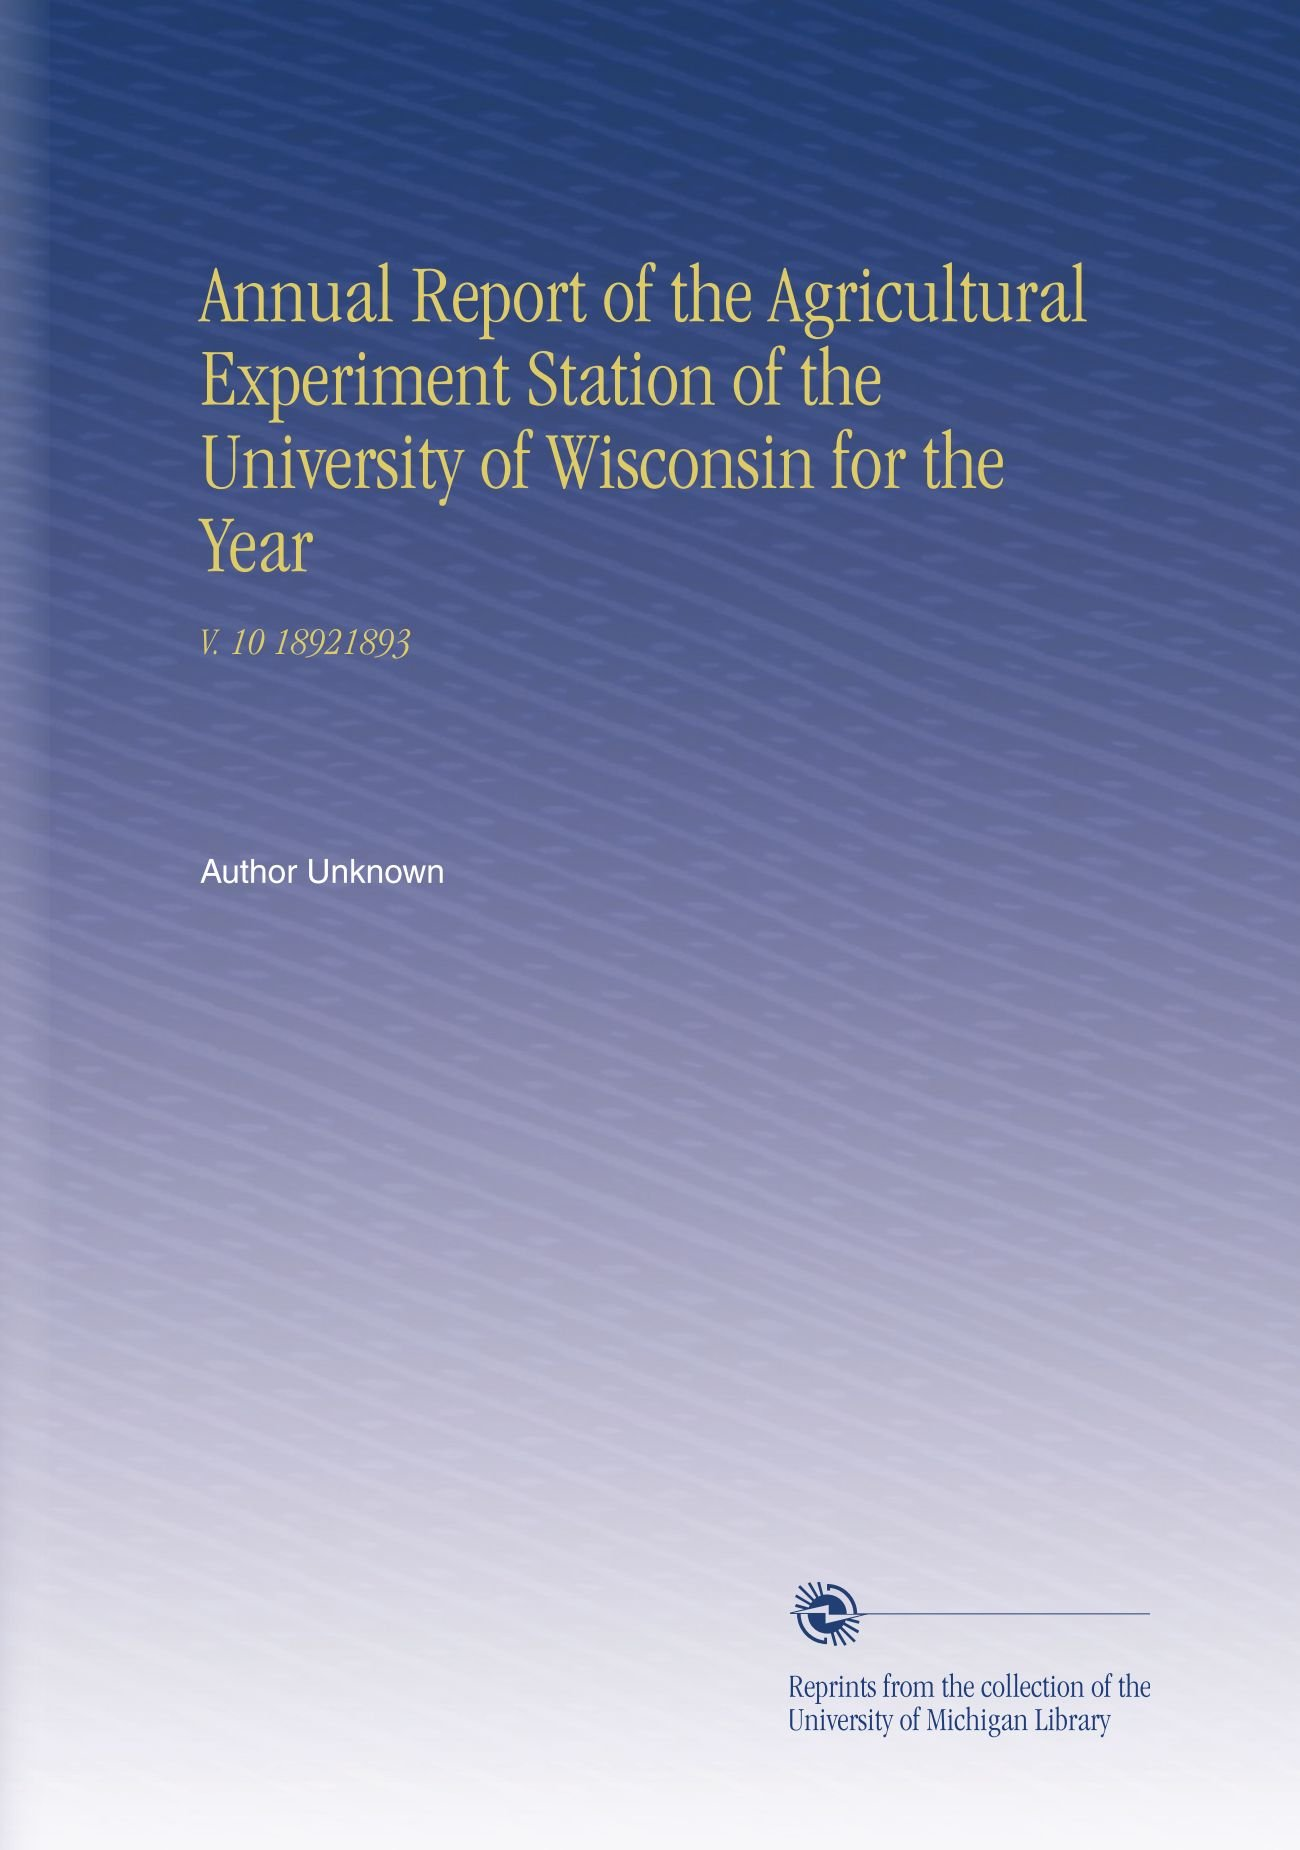 Download Annual Report of the Agricultural Experiment Station of the University of Wisconsin for the Year: V. 10 18921893 ebook